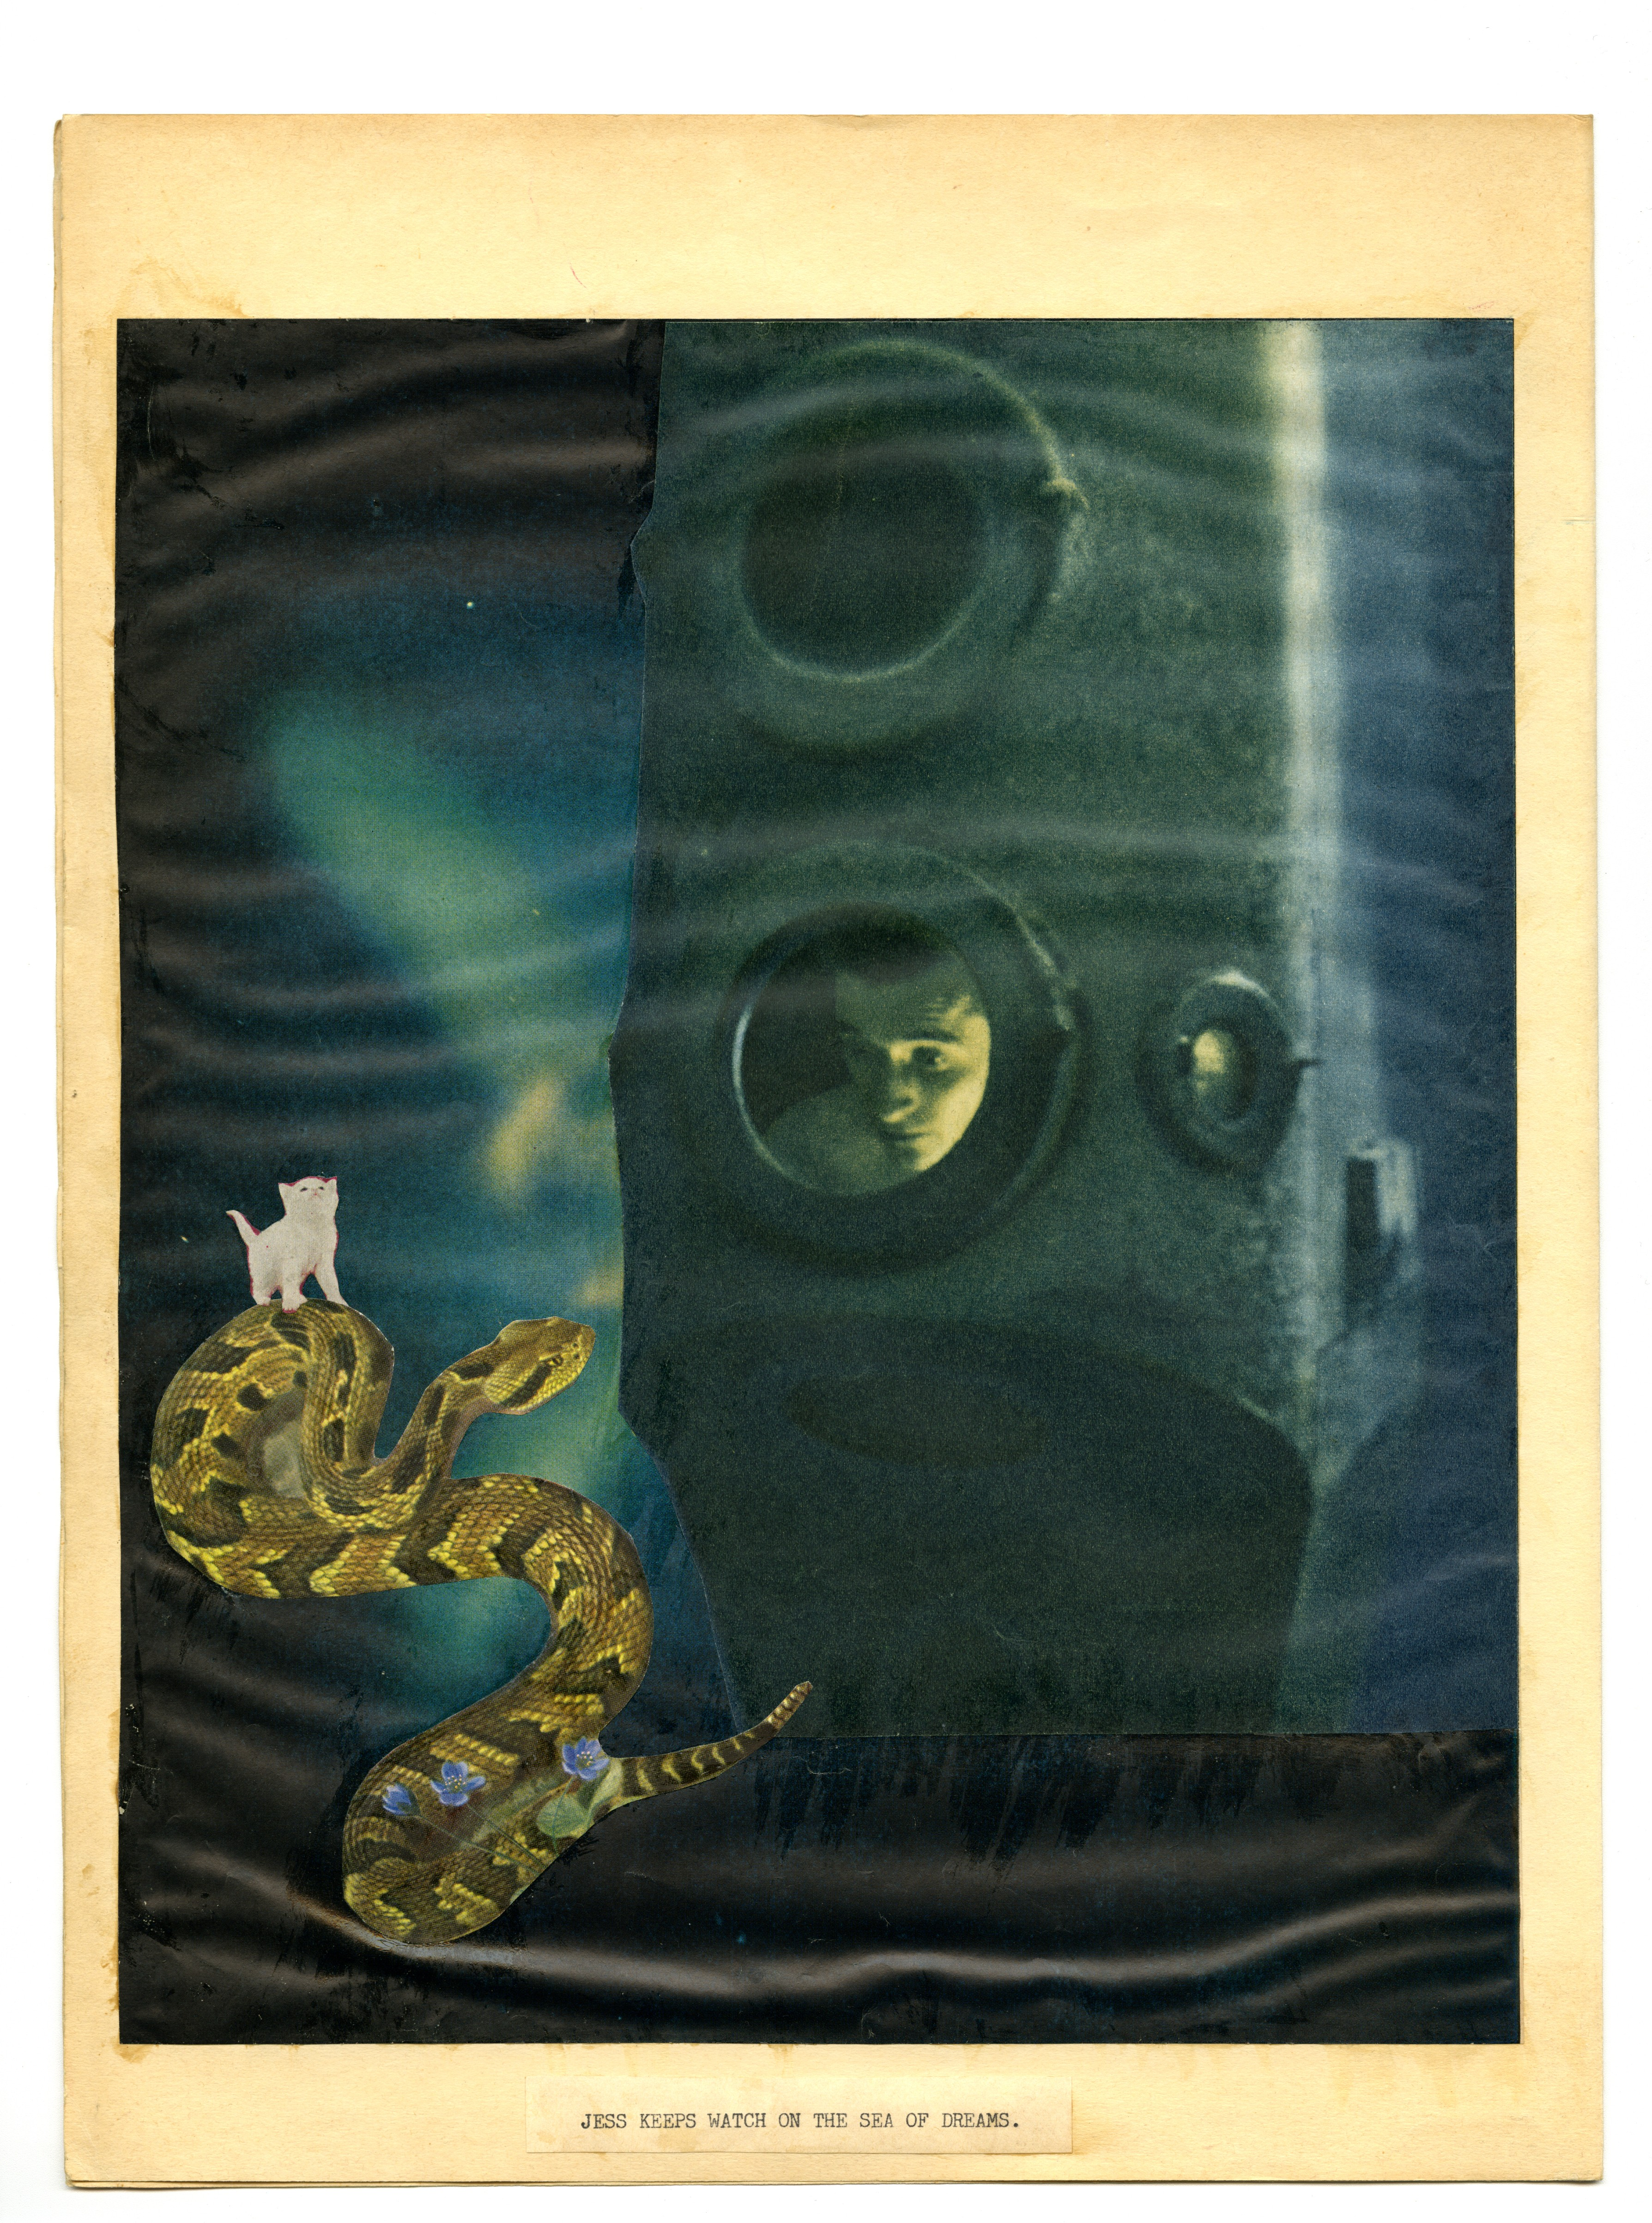 "A man looks out of a submarine into the ocean, with a small white cat riding a snake in the water. At the bottom, the words ""JESS KEEPS WATCH OF THE SEA OF DREAMS."""